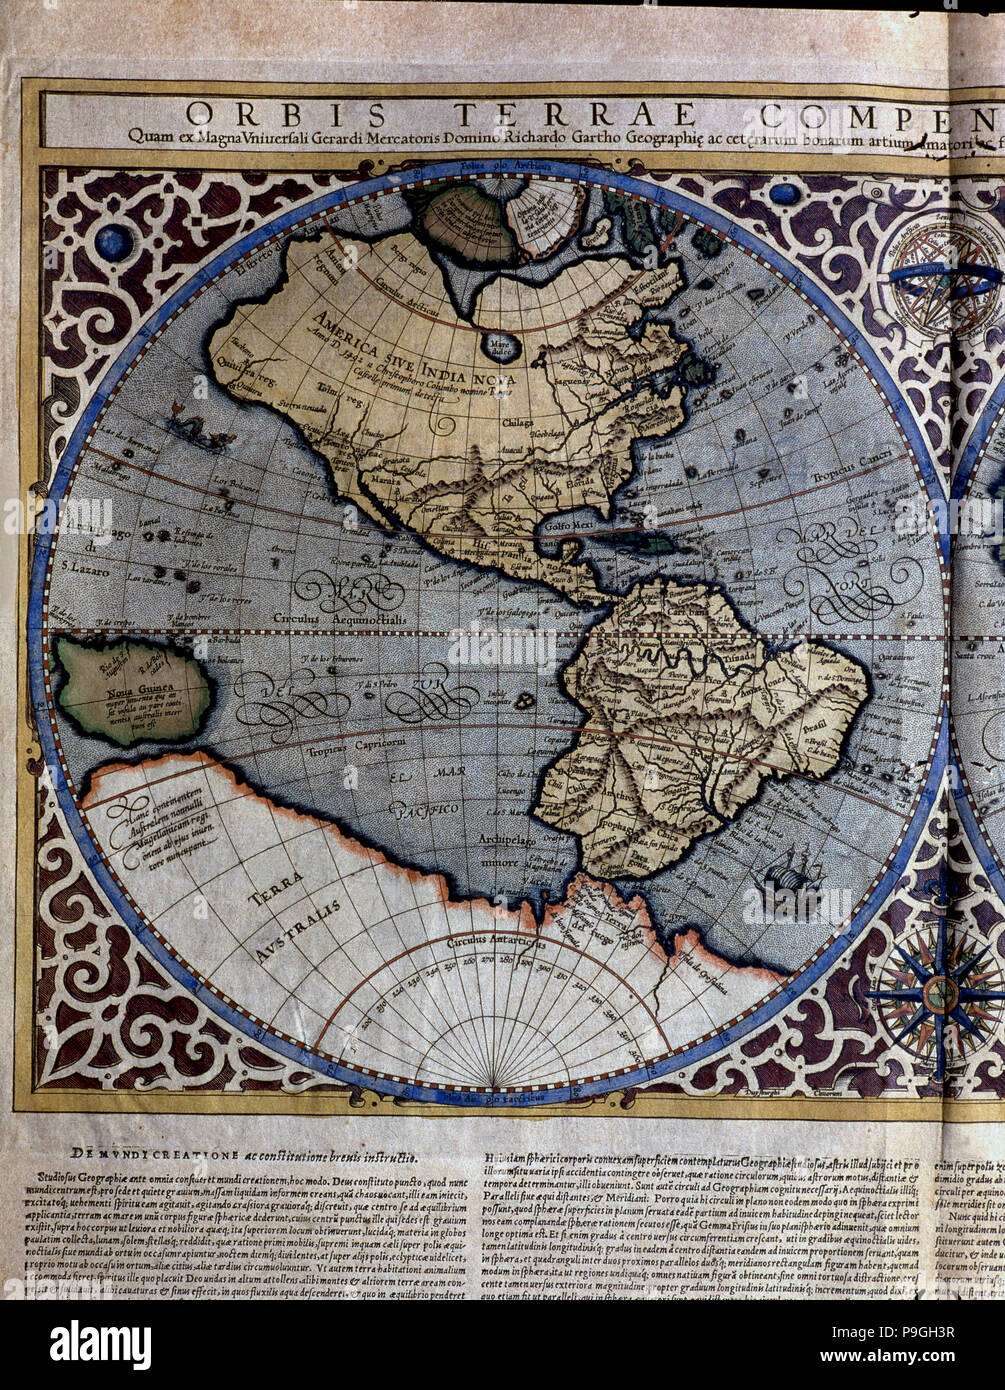 Atlas of Gerardus Mercator', 1595, map of the Americas and part of  Antarctica.